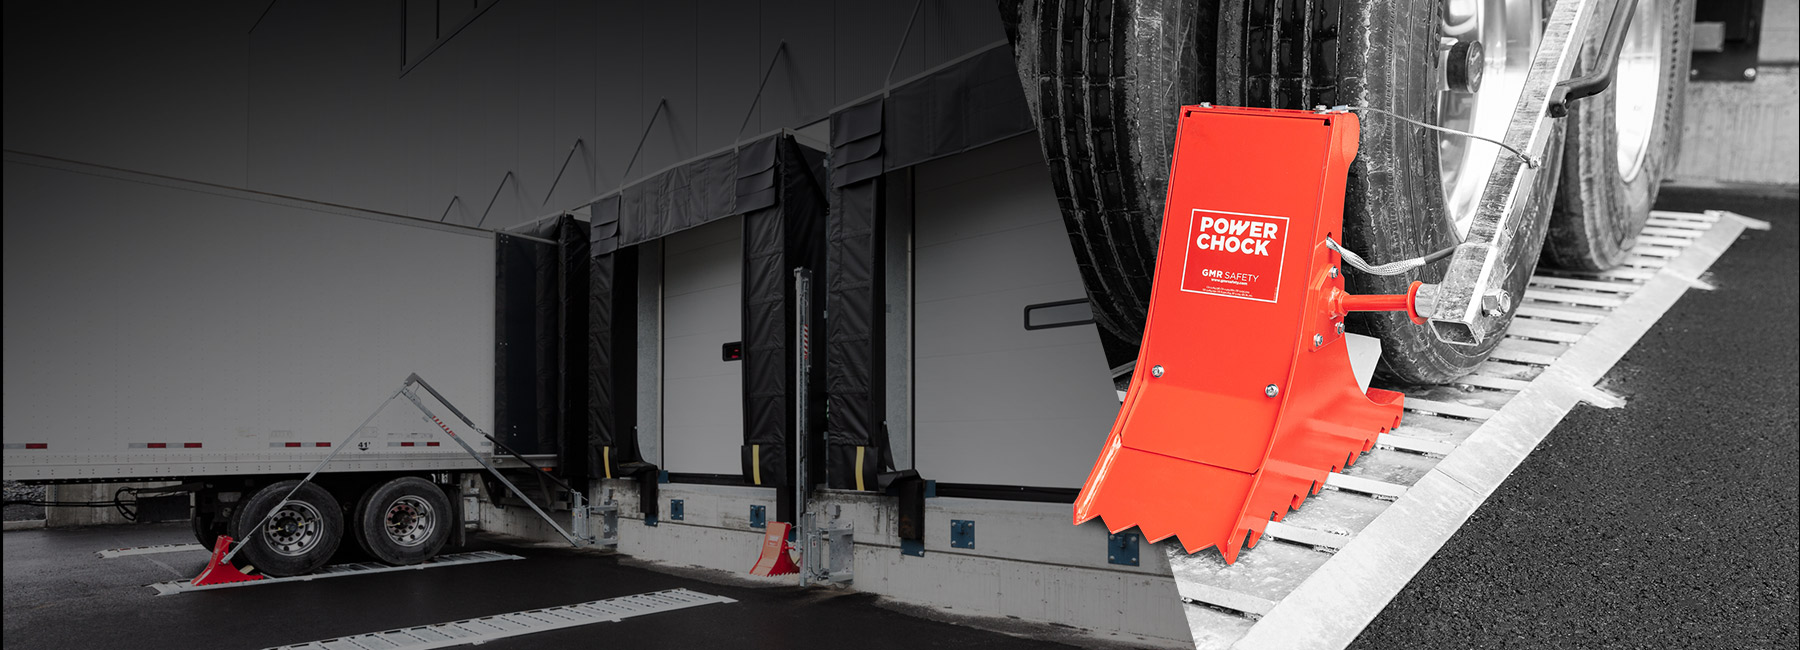 Maximize-loading-dock-safety-at-your warehouse